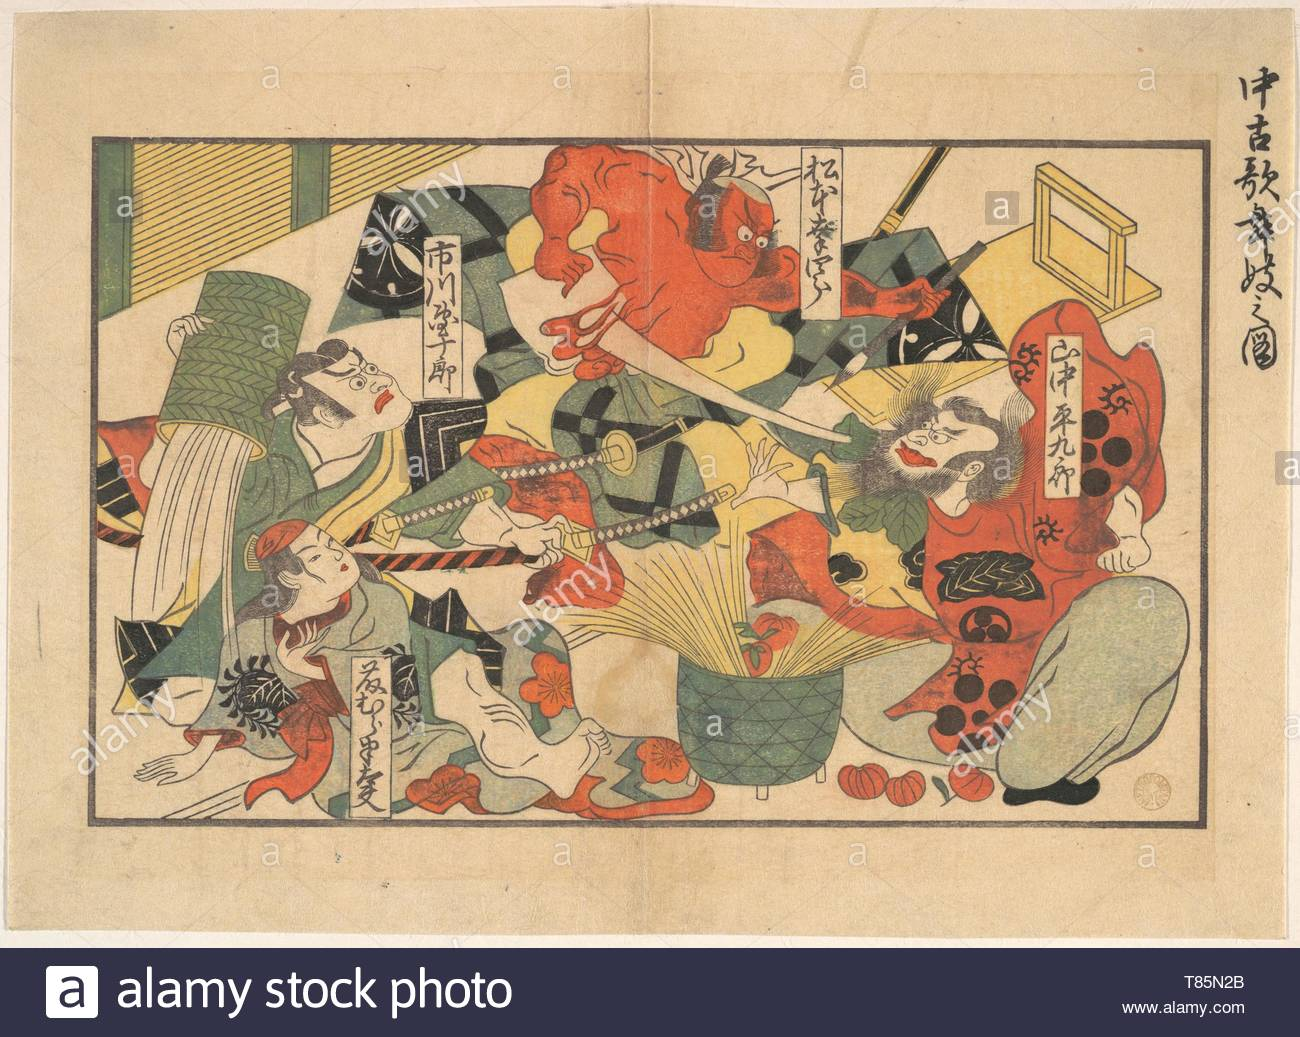 Unidentified Artist-The Advent of a Demon, Scene from a Performance in an old Kabuki Theatre - Stock Image